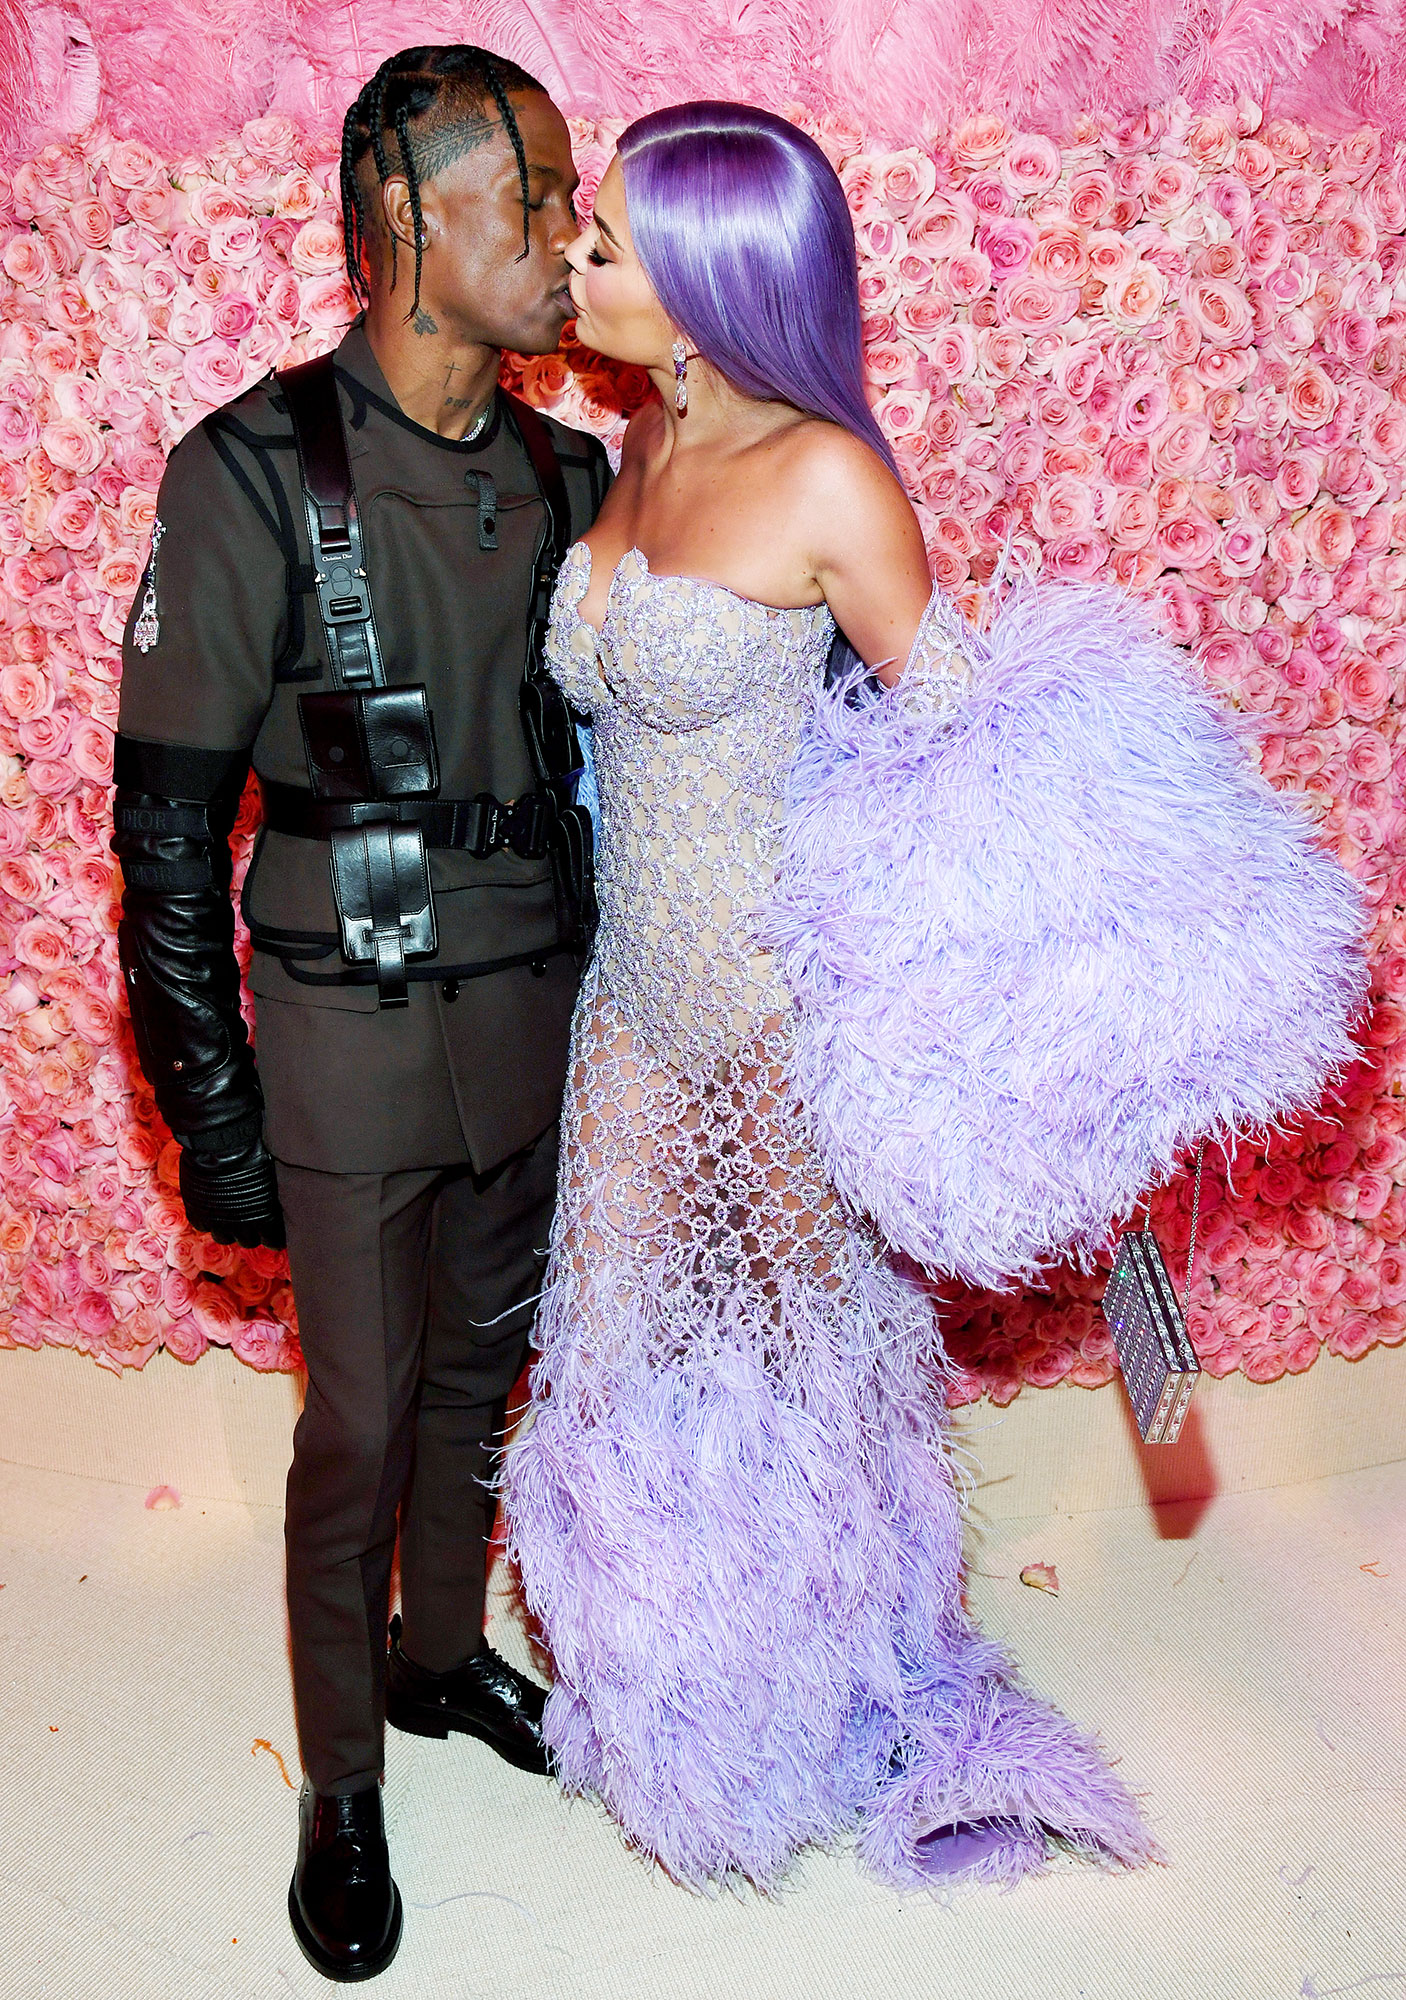 Met Gala 2019 What You Didnt See Travis Scott Kylie Jenner - Kylie and her rapper beau showed PDA inside the party.